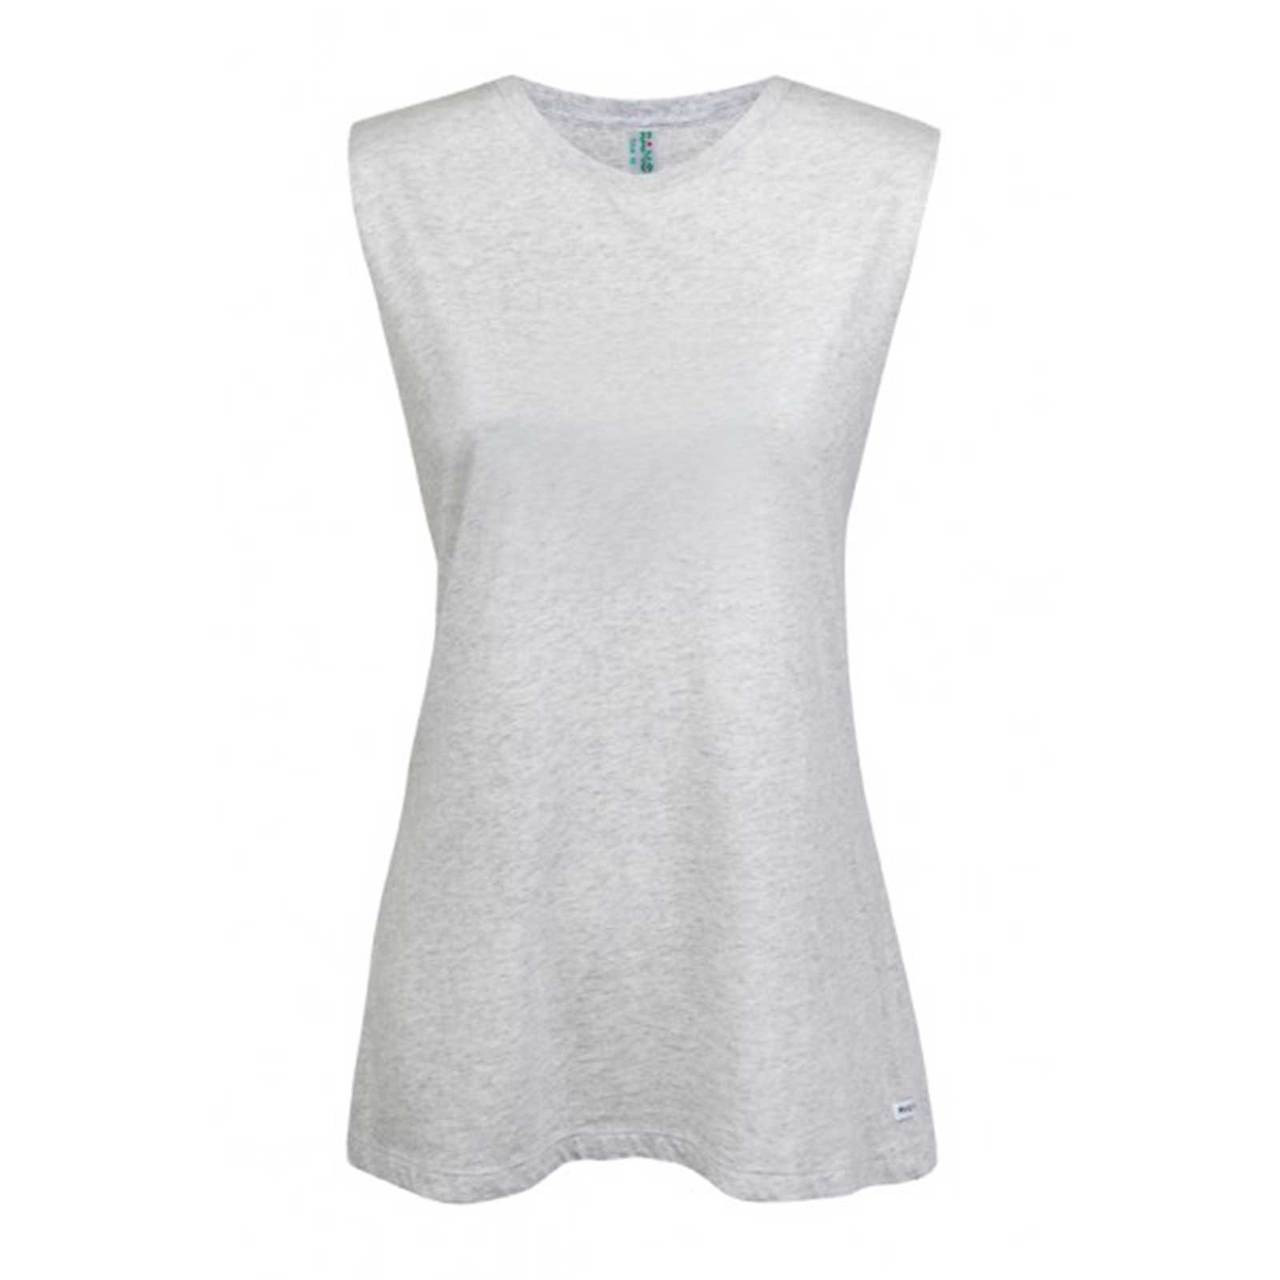 a6770dcec89b2 Ladies Muscle Tee Tank with Low Cut Sides